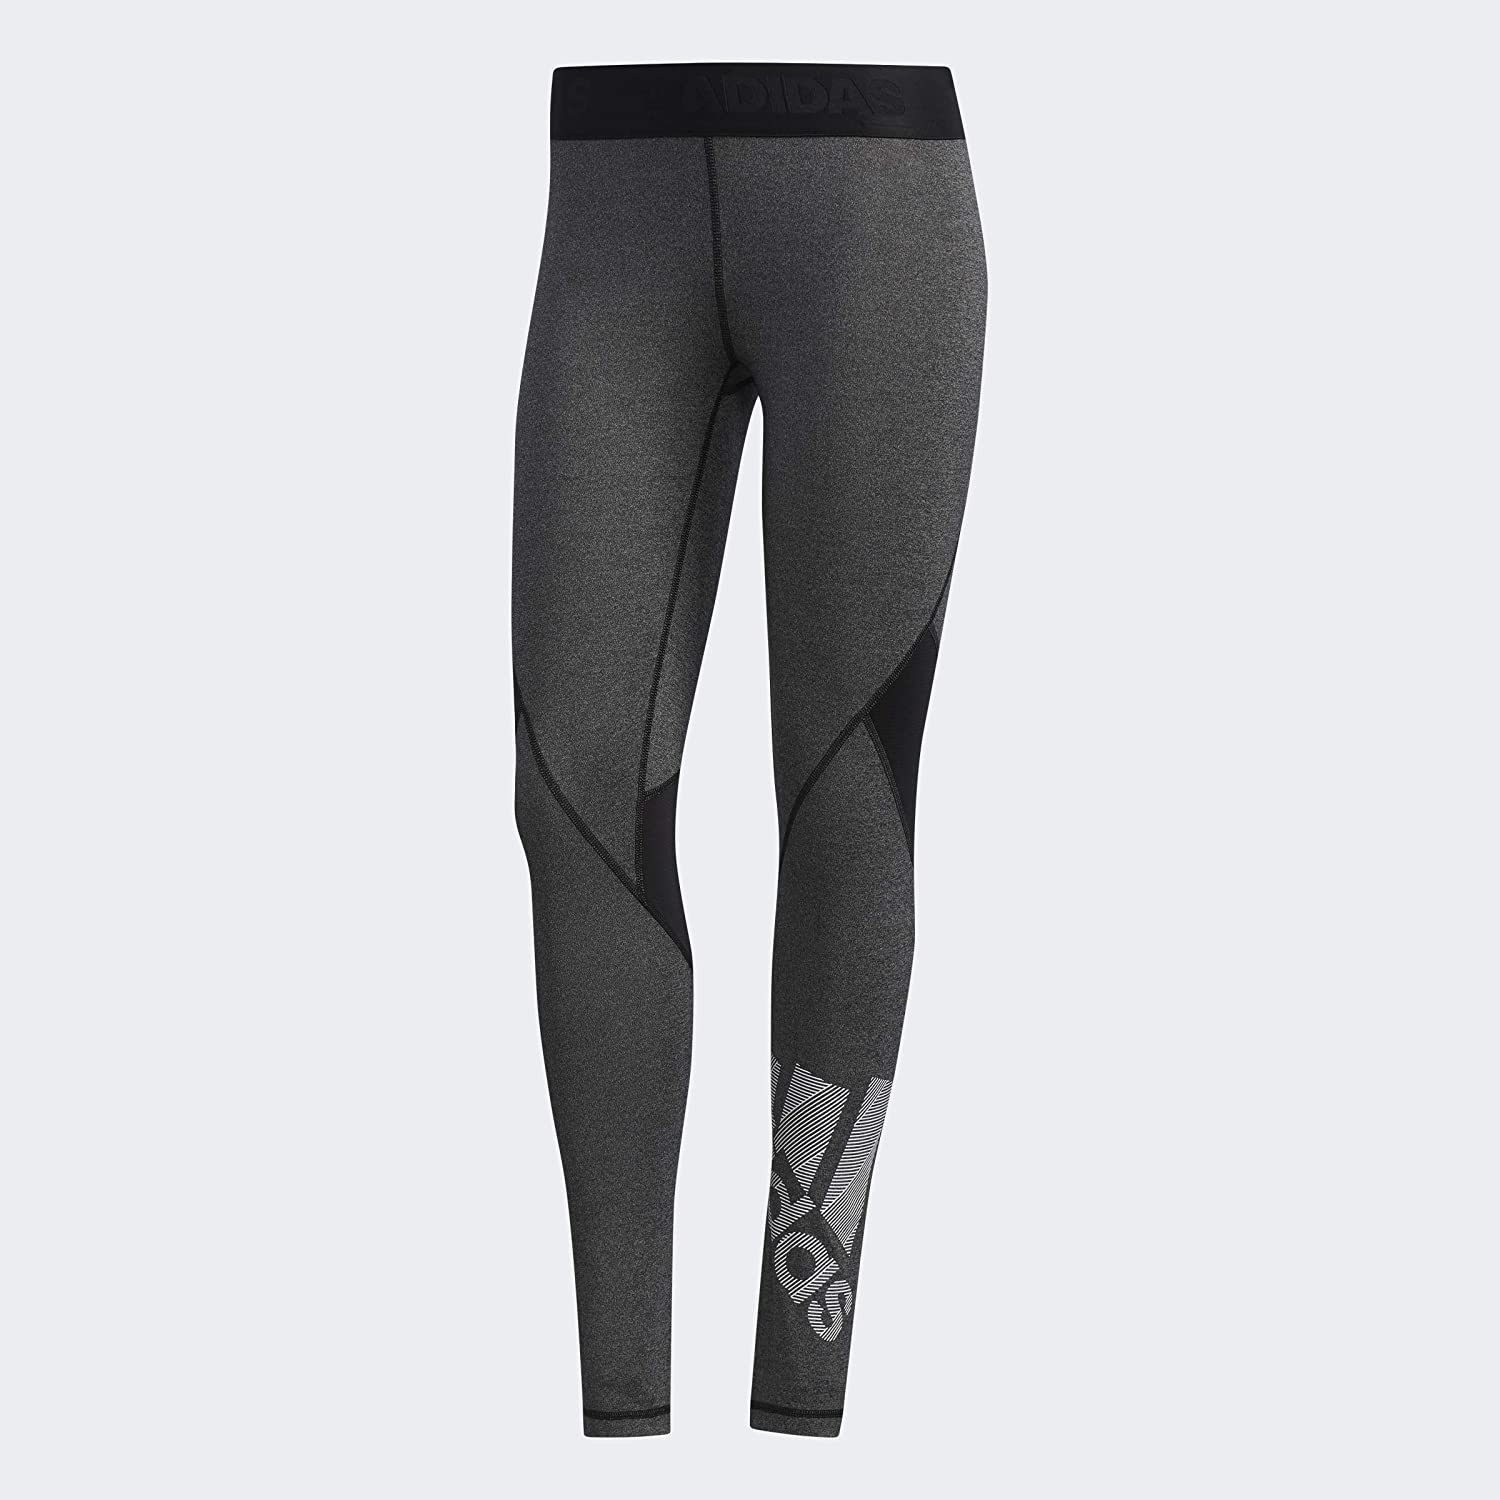 adidas Women's Clearance SALE! Limited time! Alphaskin Badge Rapid rise Sport of Tight